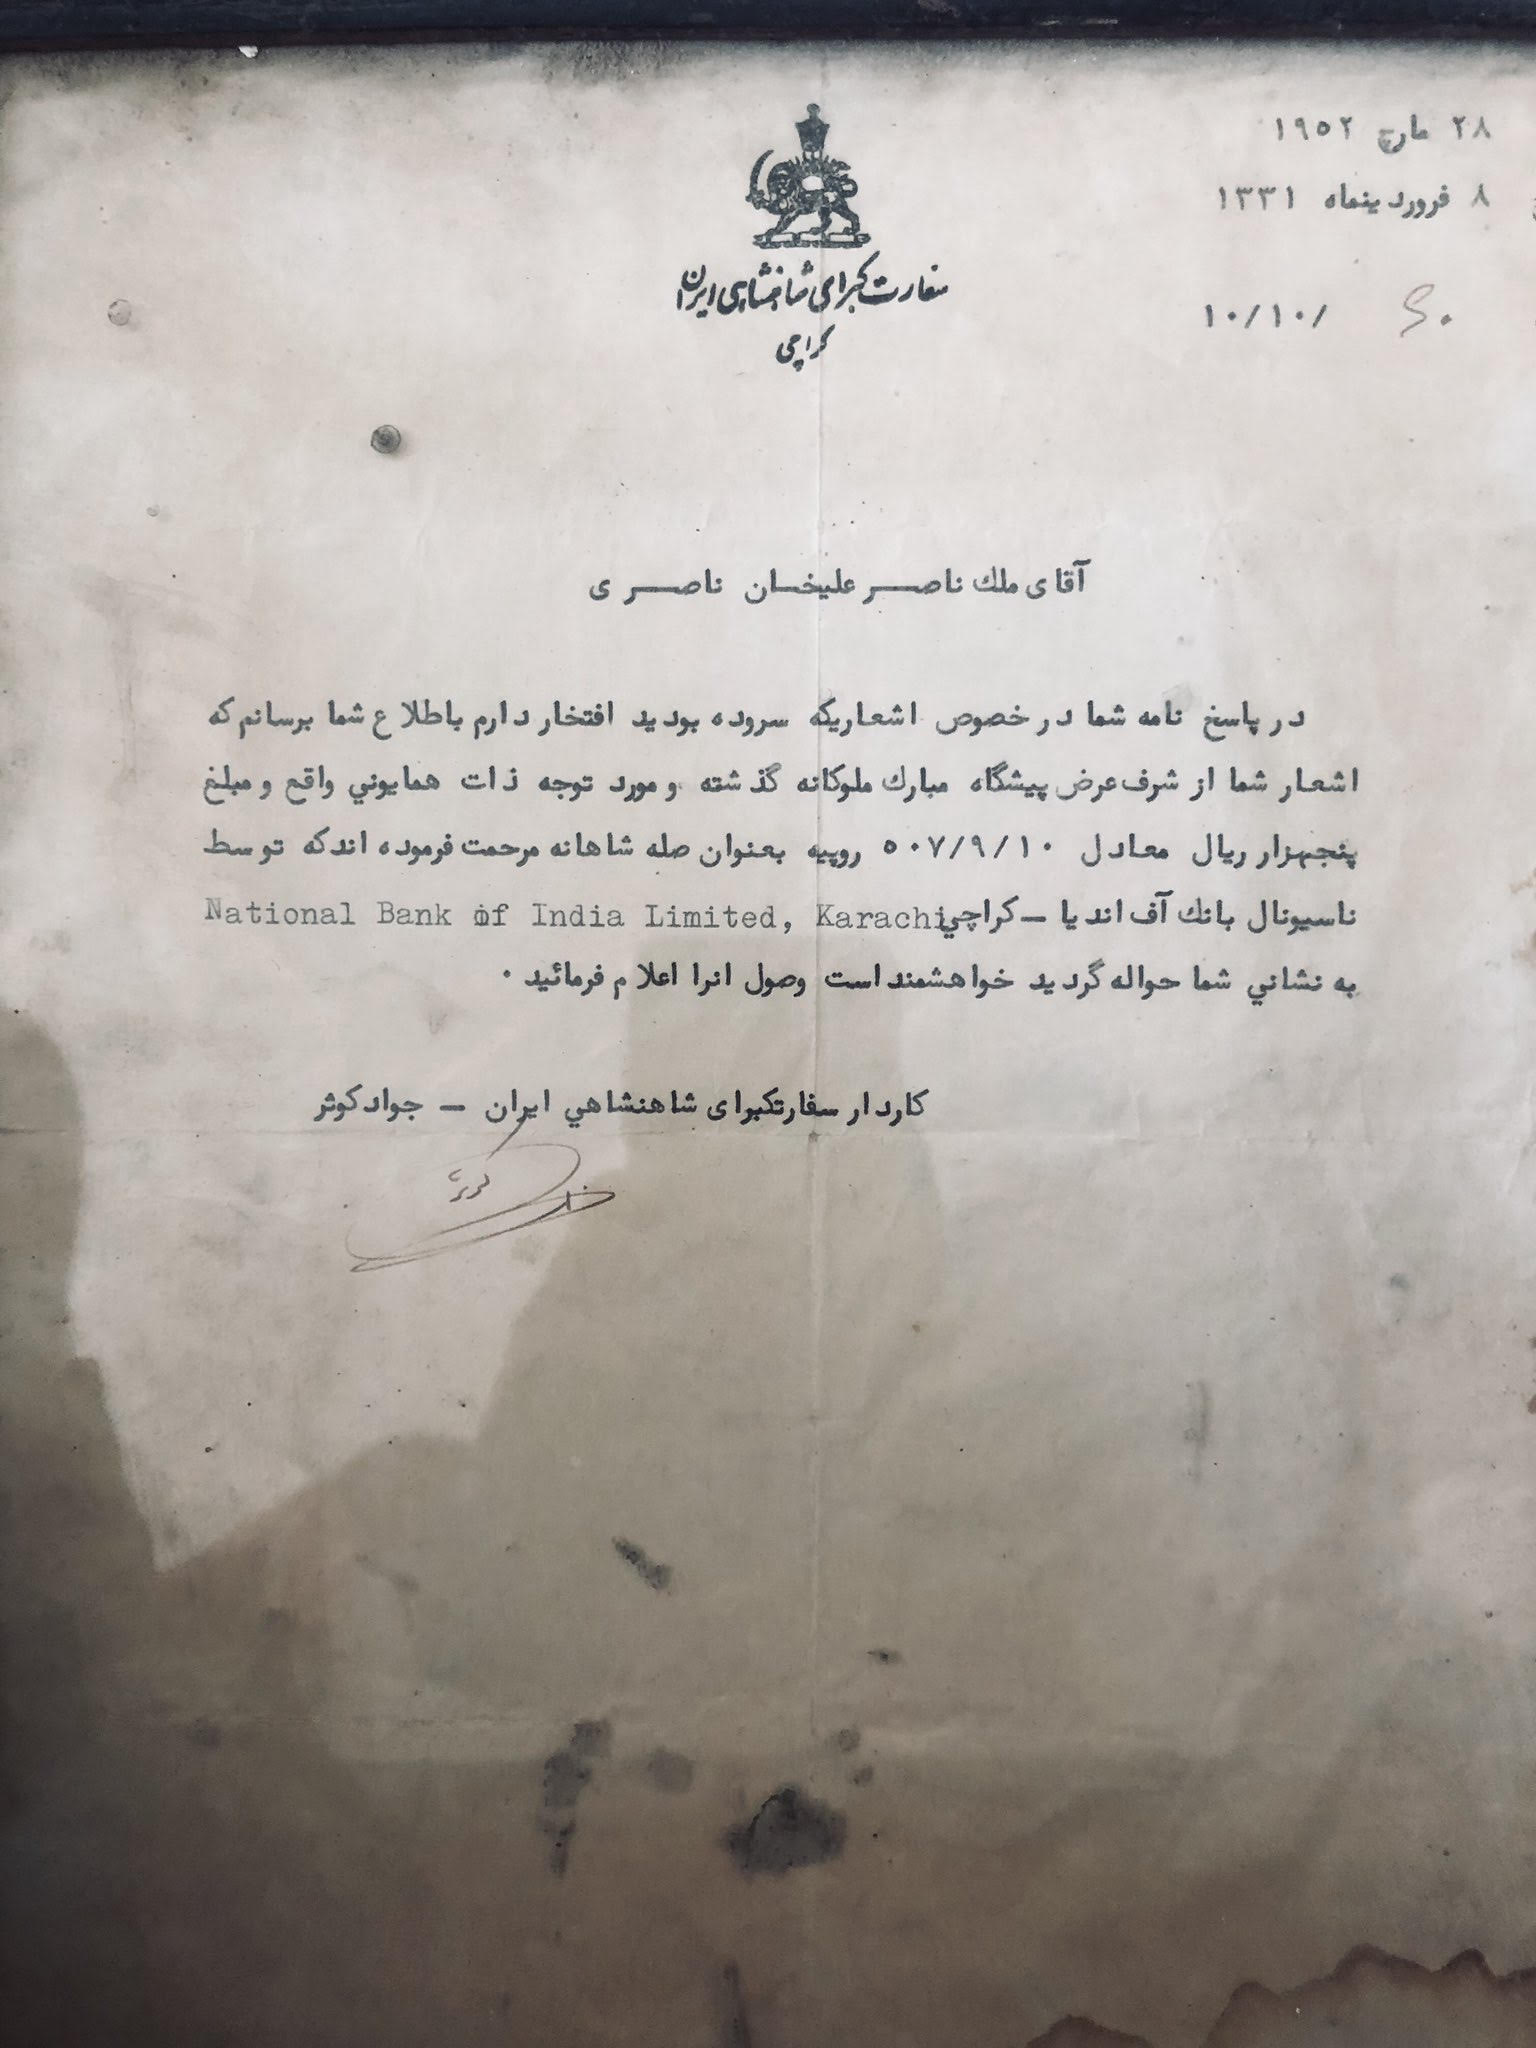 Letter from the Iranian Consulate, for Malik Nasir Ali Khan Nasir